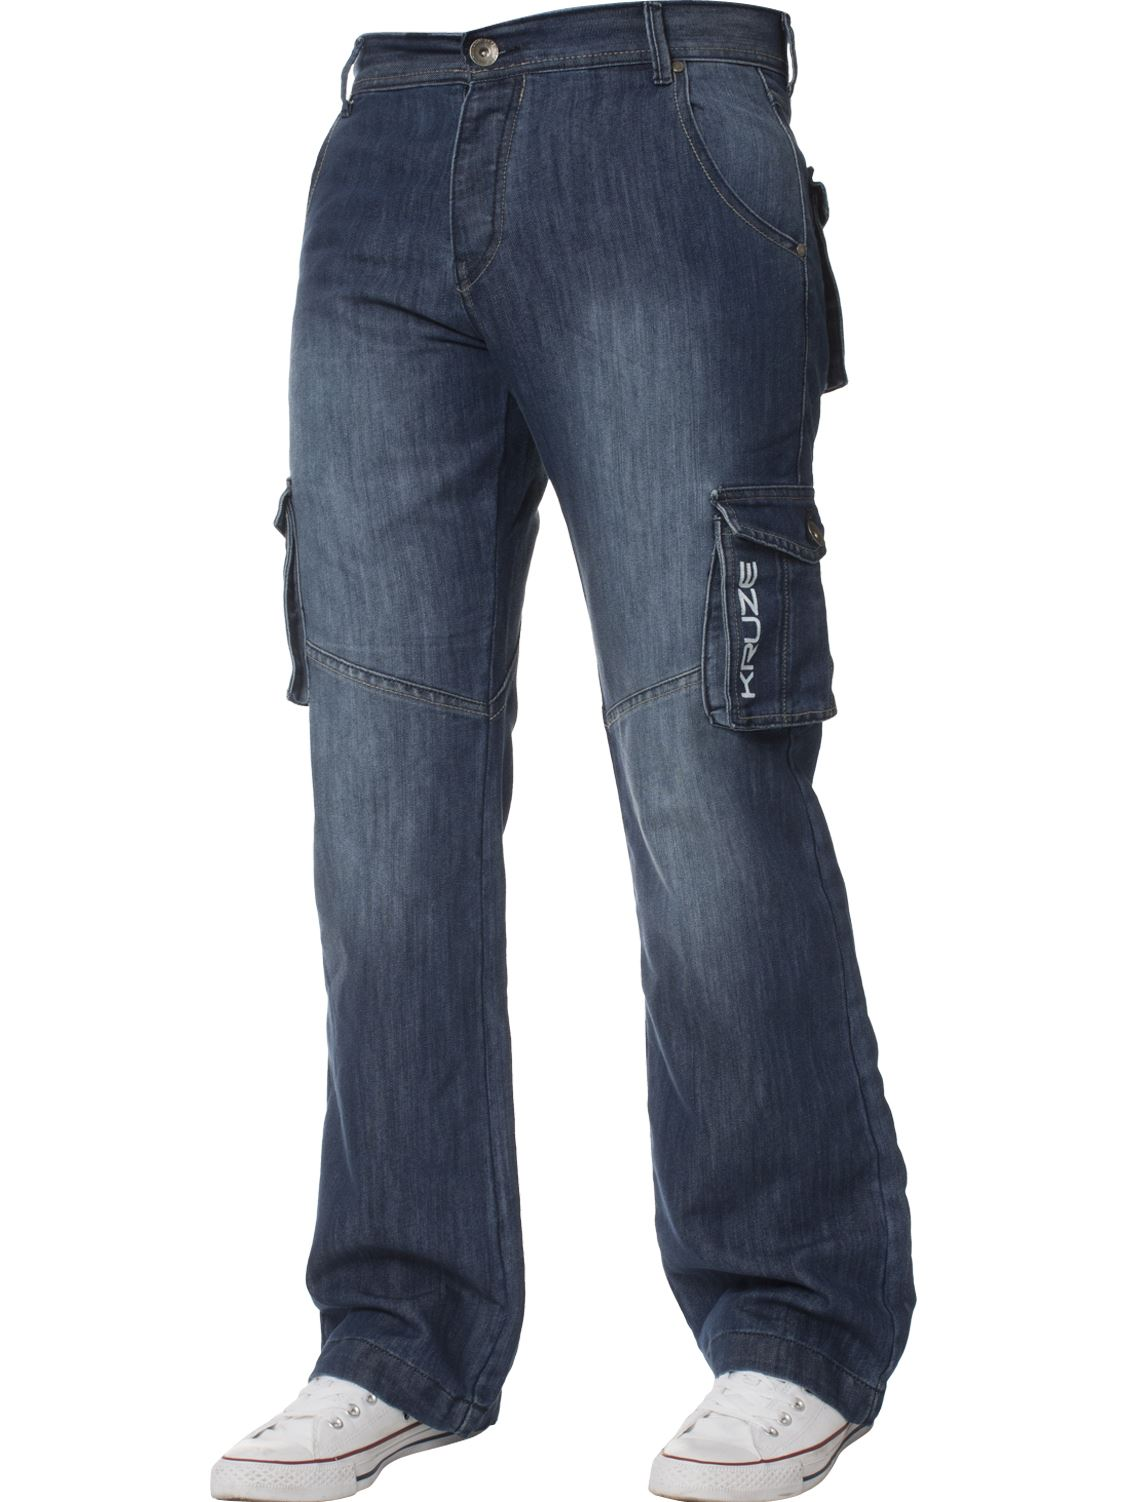 Mens-Cargo-Jeans-Combat-Trousers-Heavy-Duty-Work-Casual-Big-Tall-Denim-Pants thumbnail 52